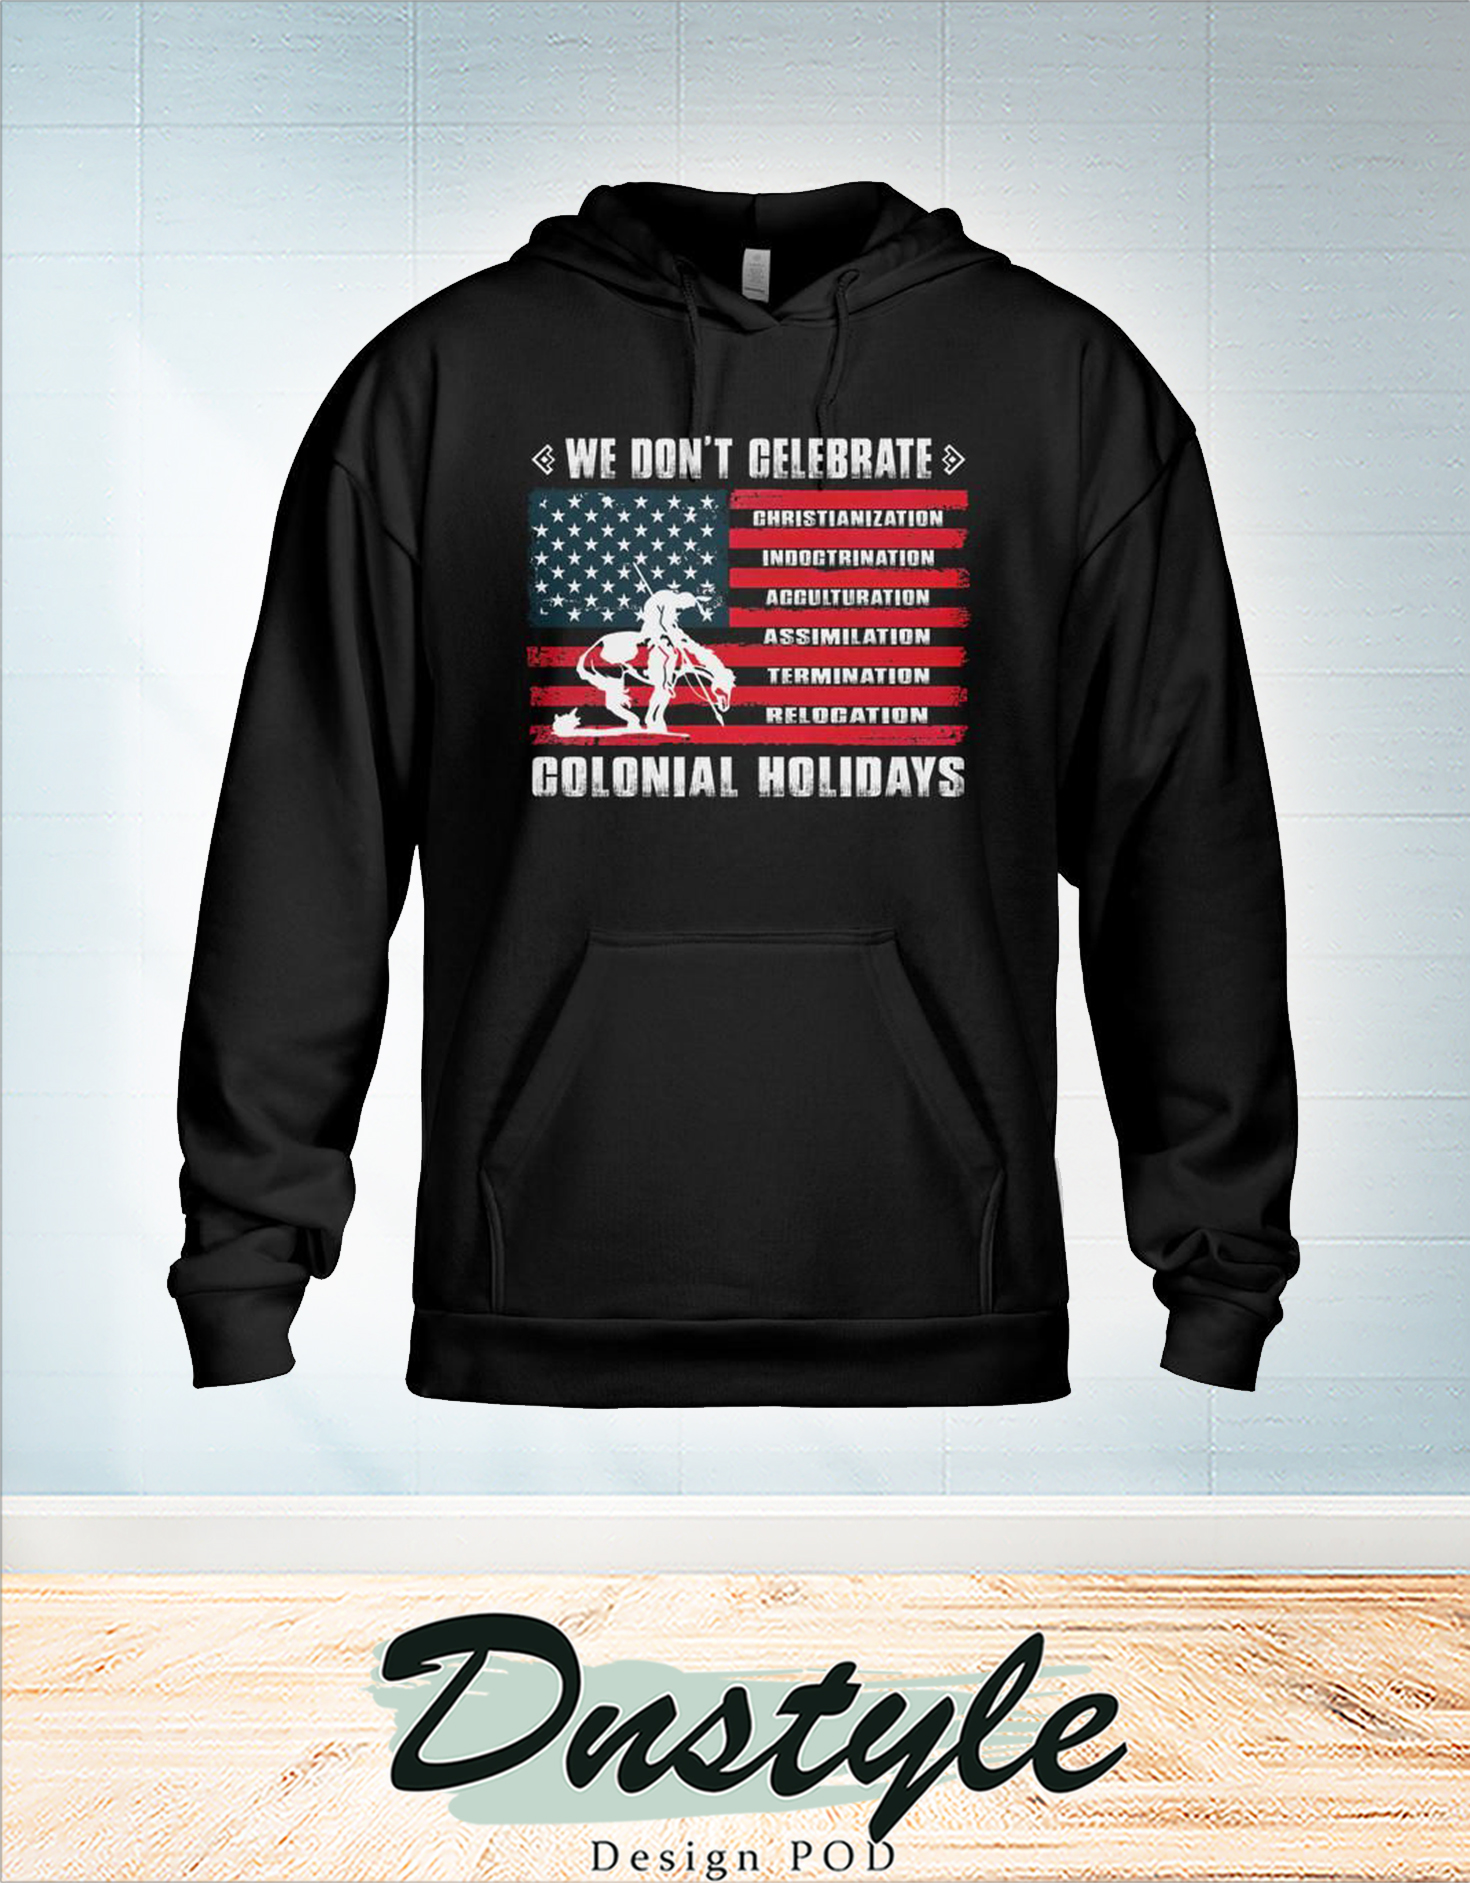 We don't celebrate colonial holidays hoodie